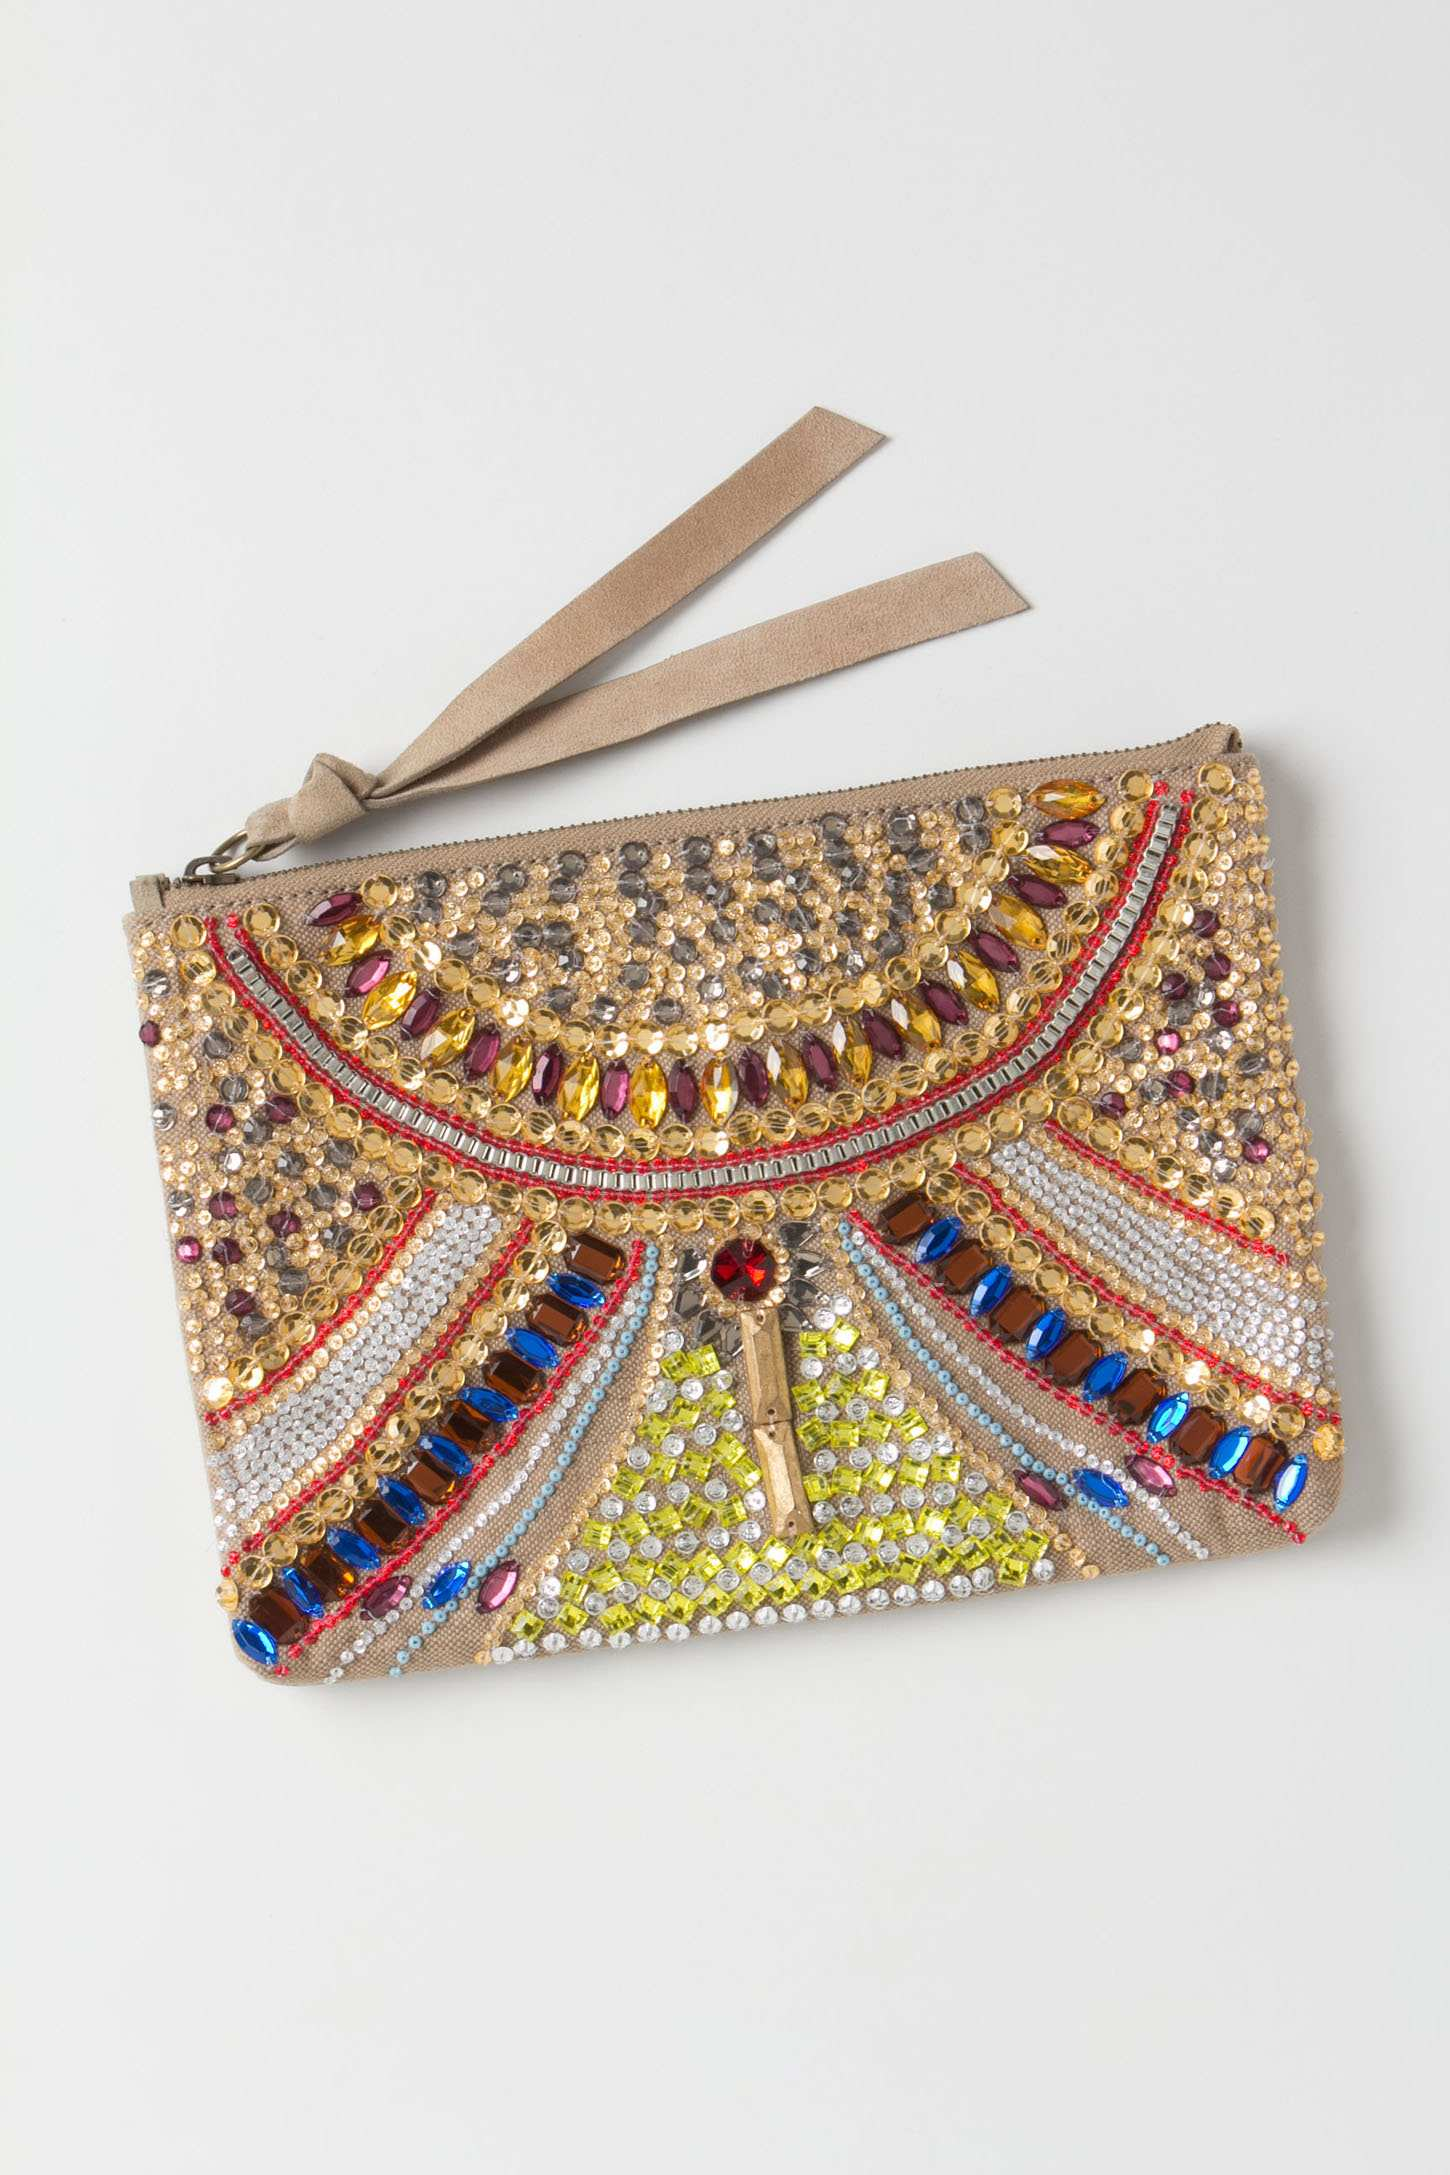 Cheap wedding purse, Buy Quality bag wedding directly from China clutch bag Suppliers: Milisente New Women Flower Clutches Beaded Clutch Bag Female Small Party Bags Wedding Clutch Purse Enjoy Free Shipping Worldwide! Limited Time /5(19).